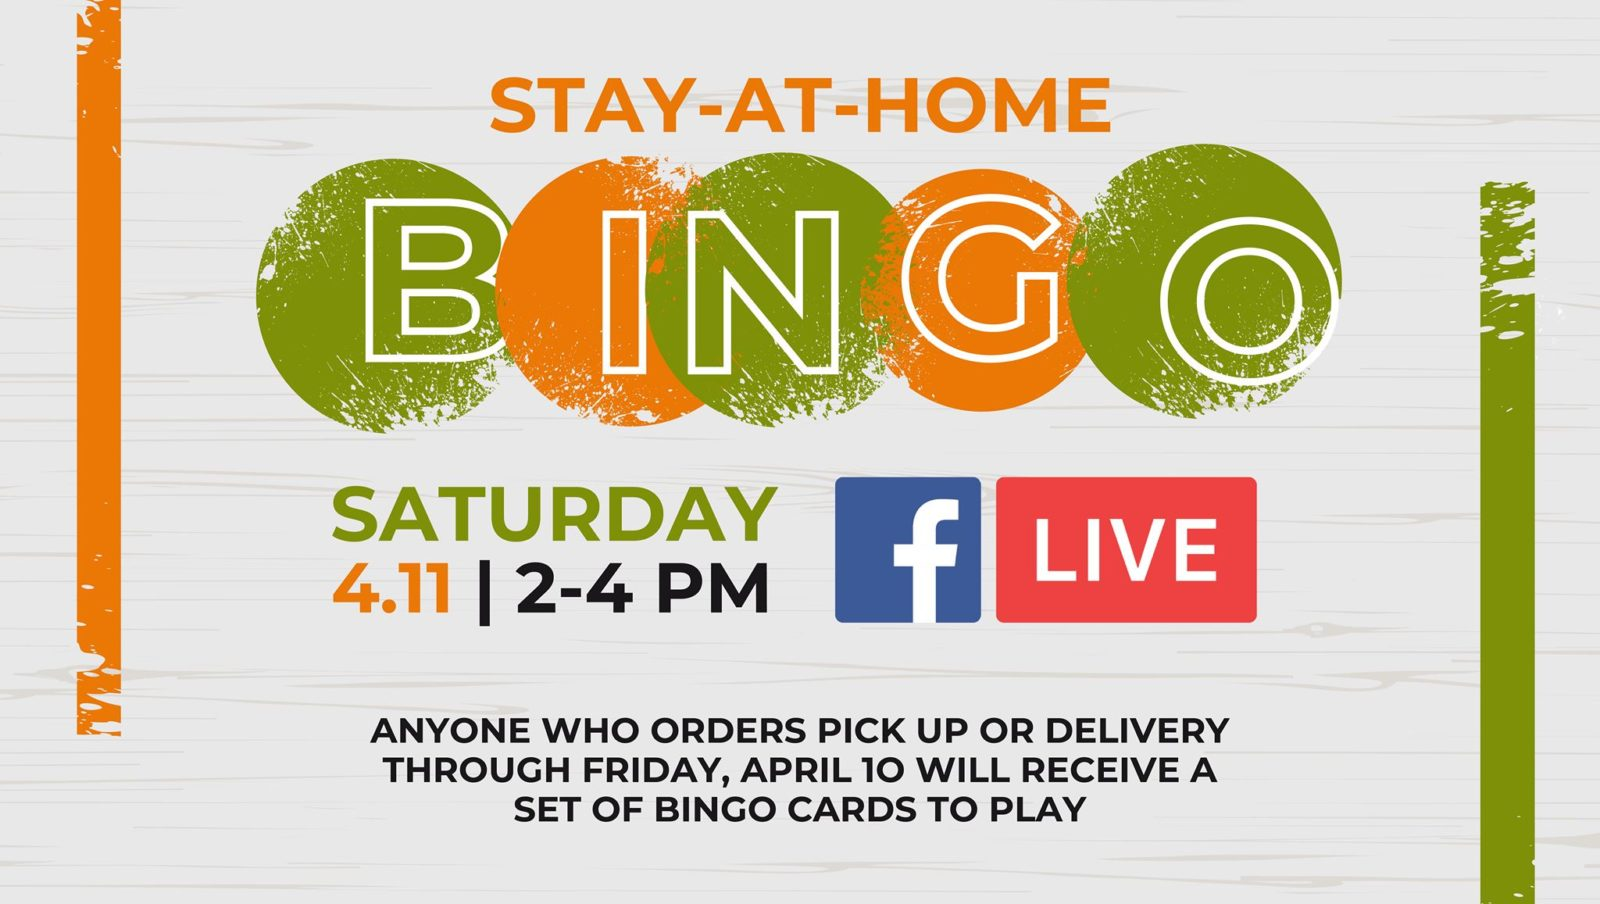 Stay-At-Home BINGO